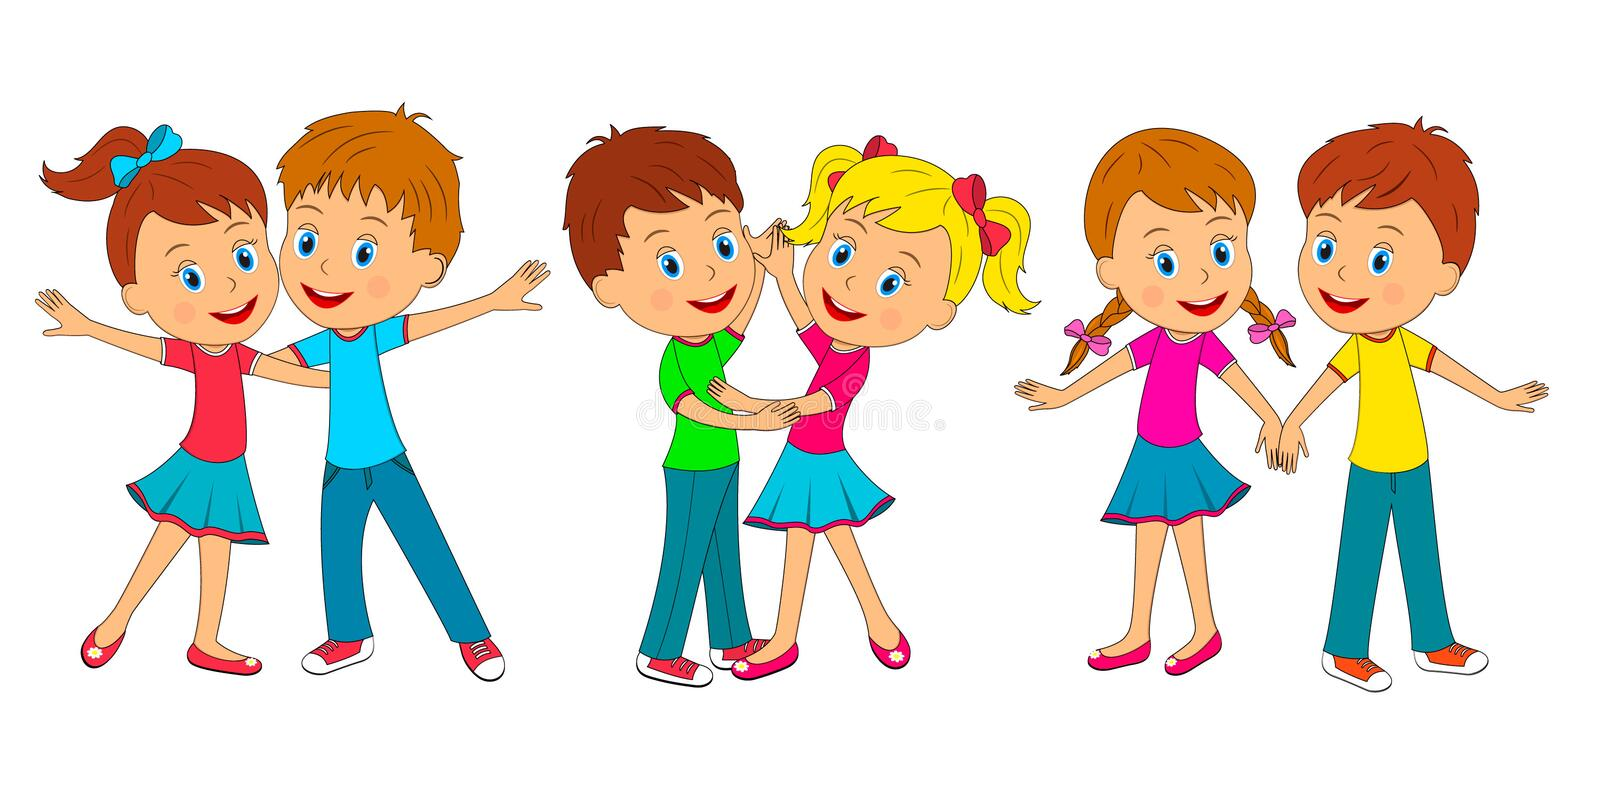 Boy and girl dance. Kids, boy and girl dance, illustration, vector vector illustration